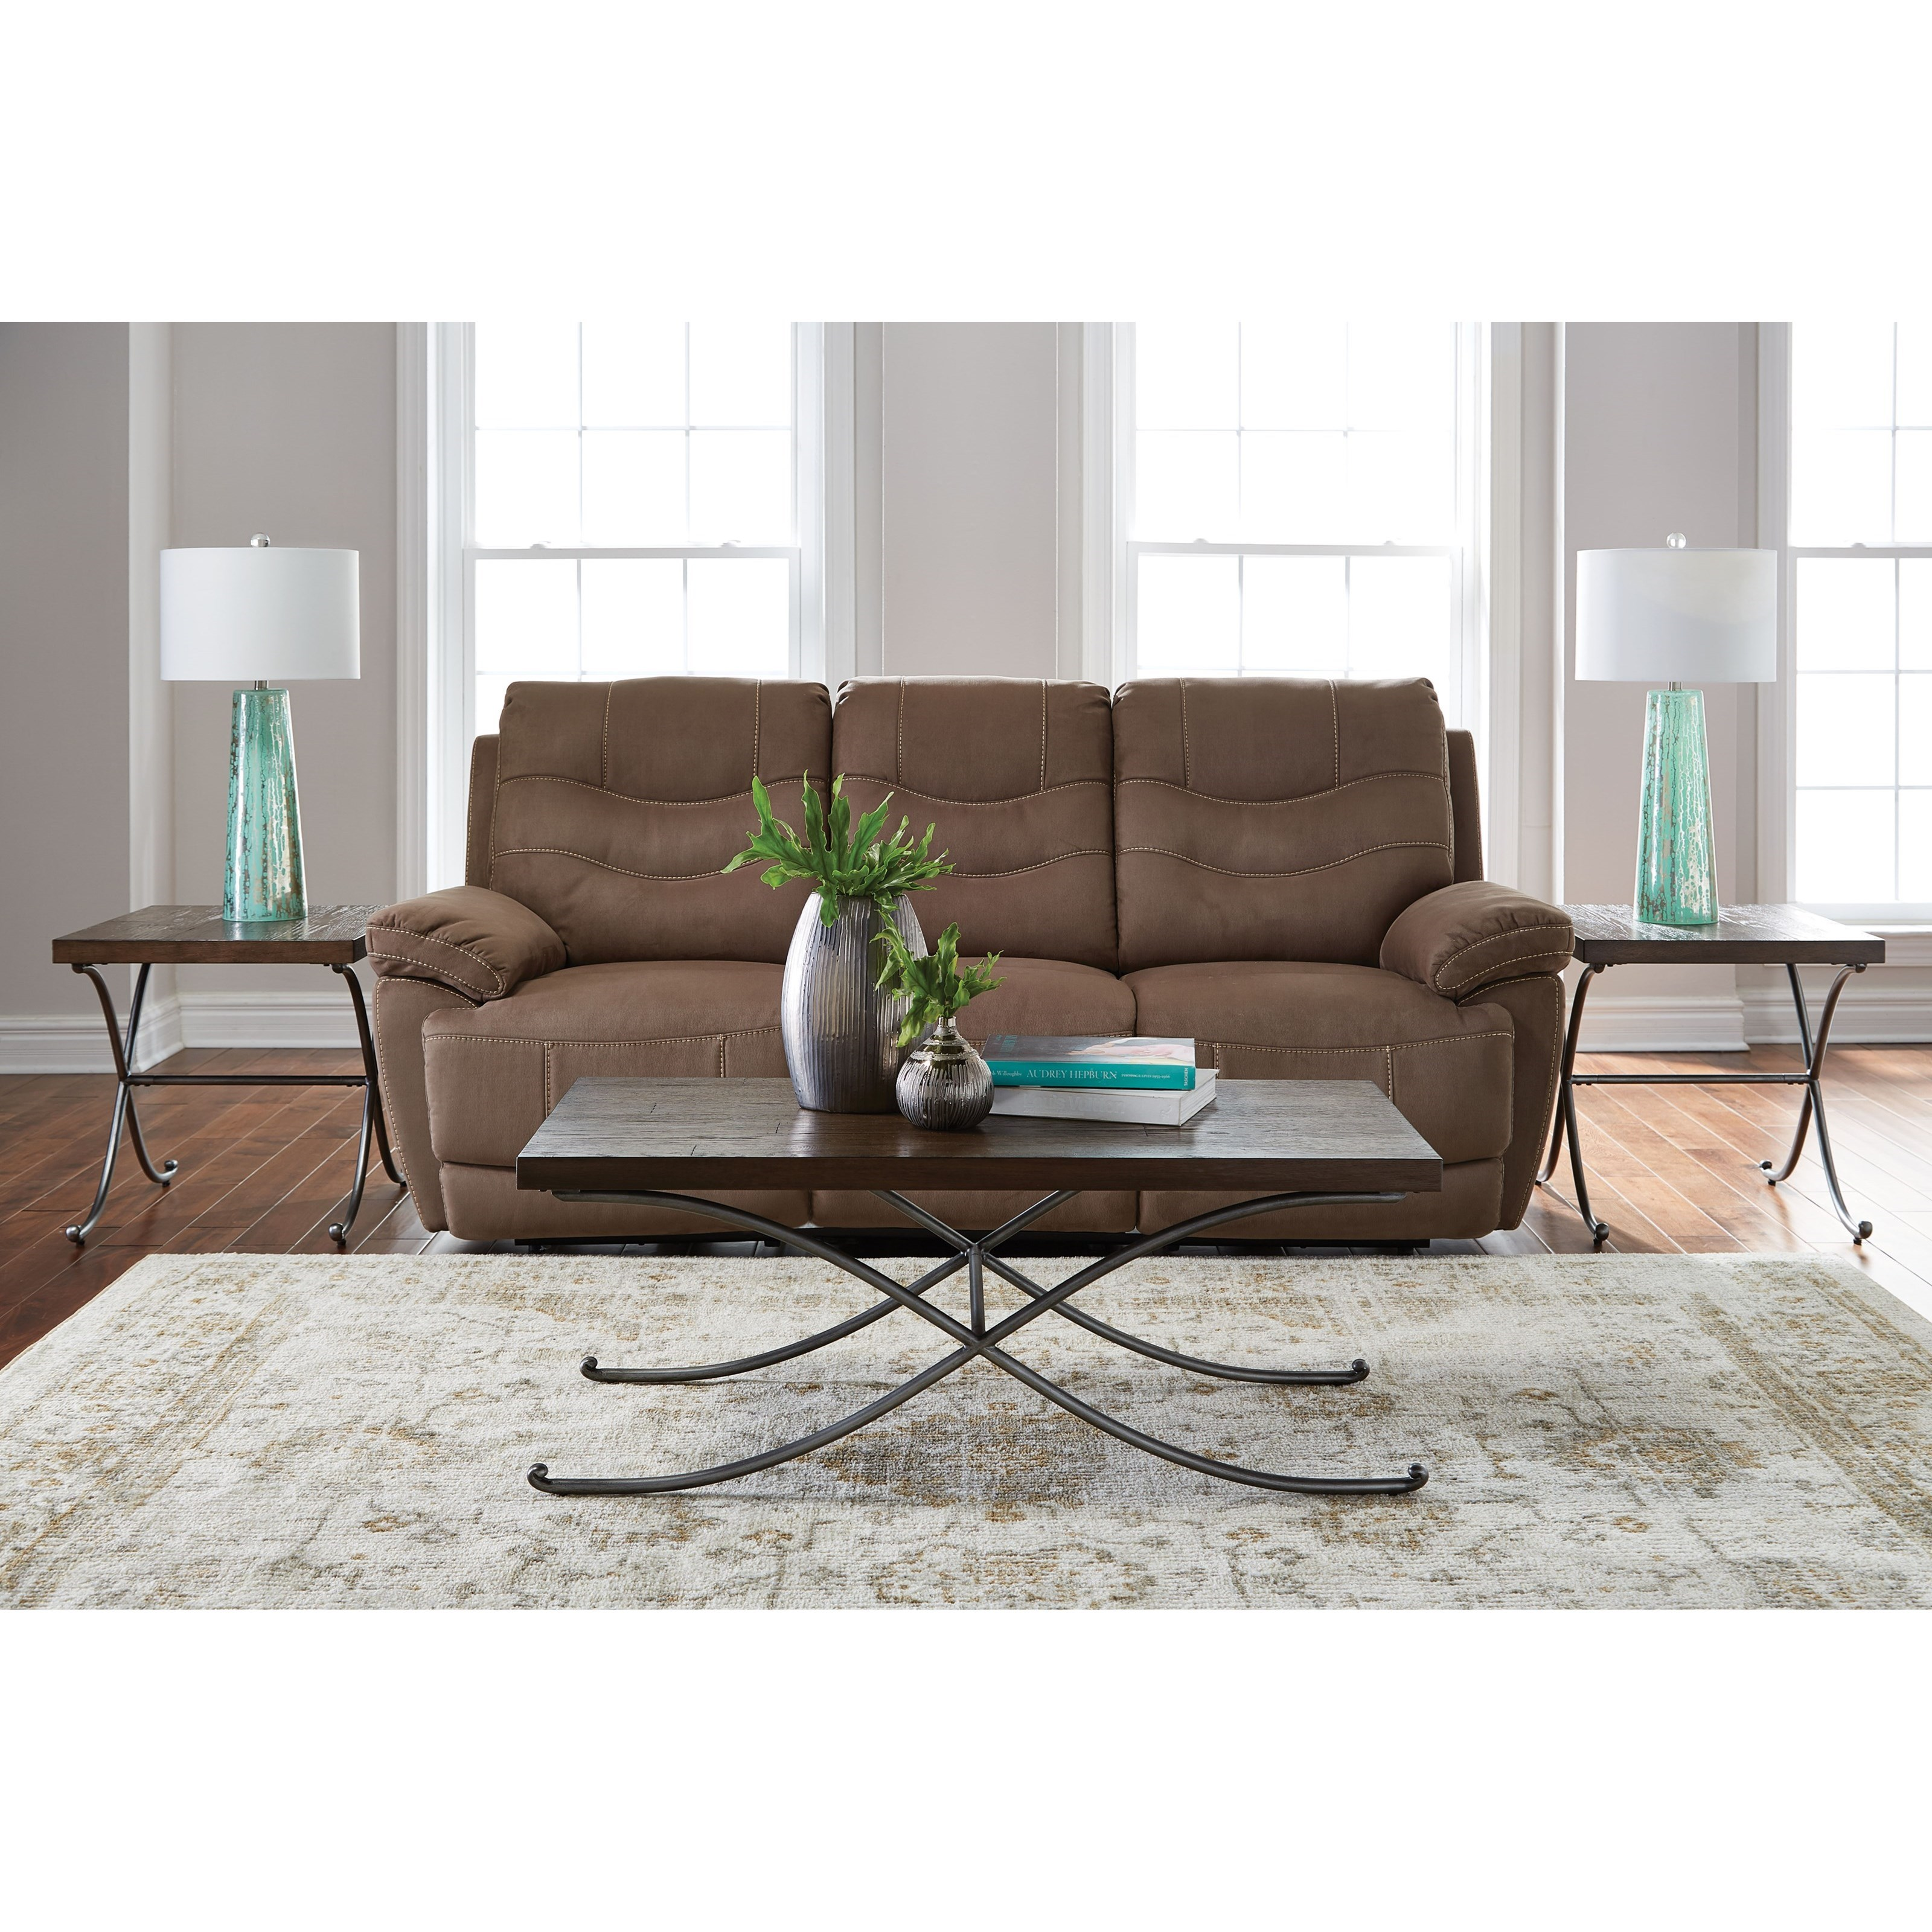 20540 Modern Occasional Table Group by Standard Furniture at Rooms for Less